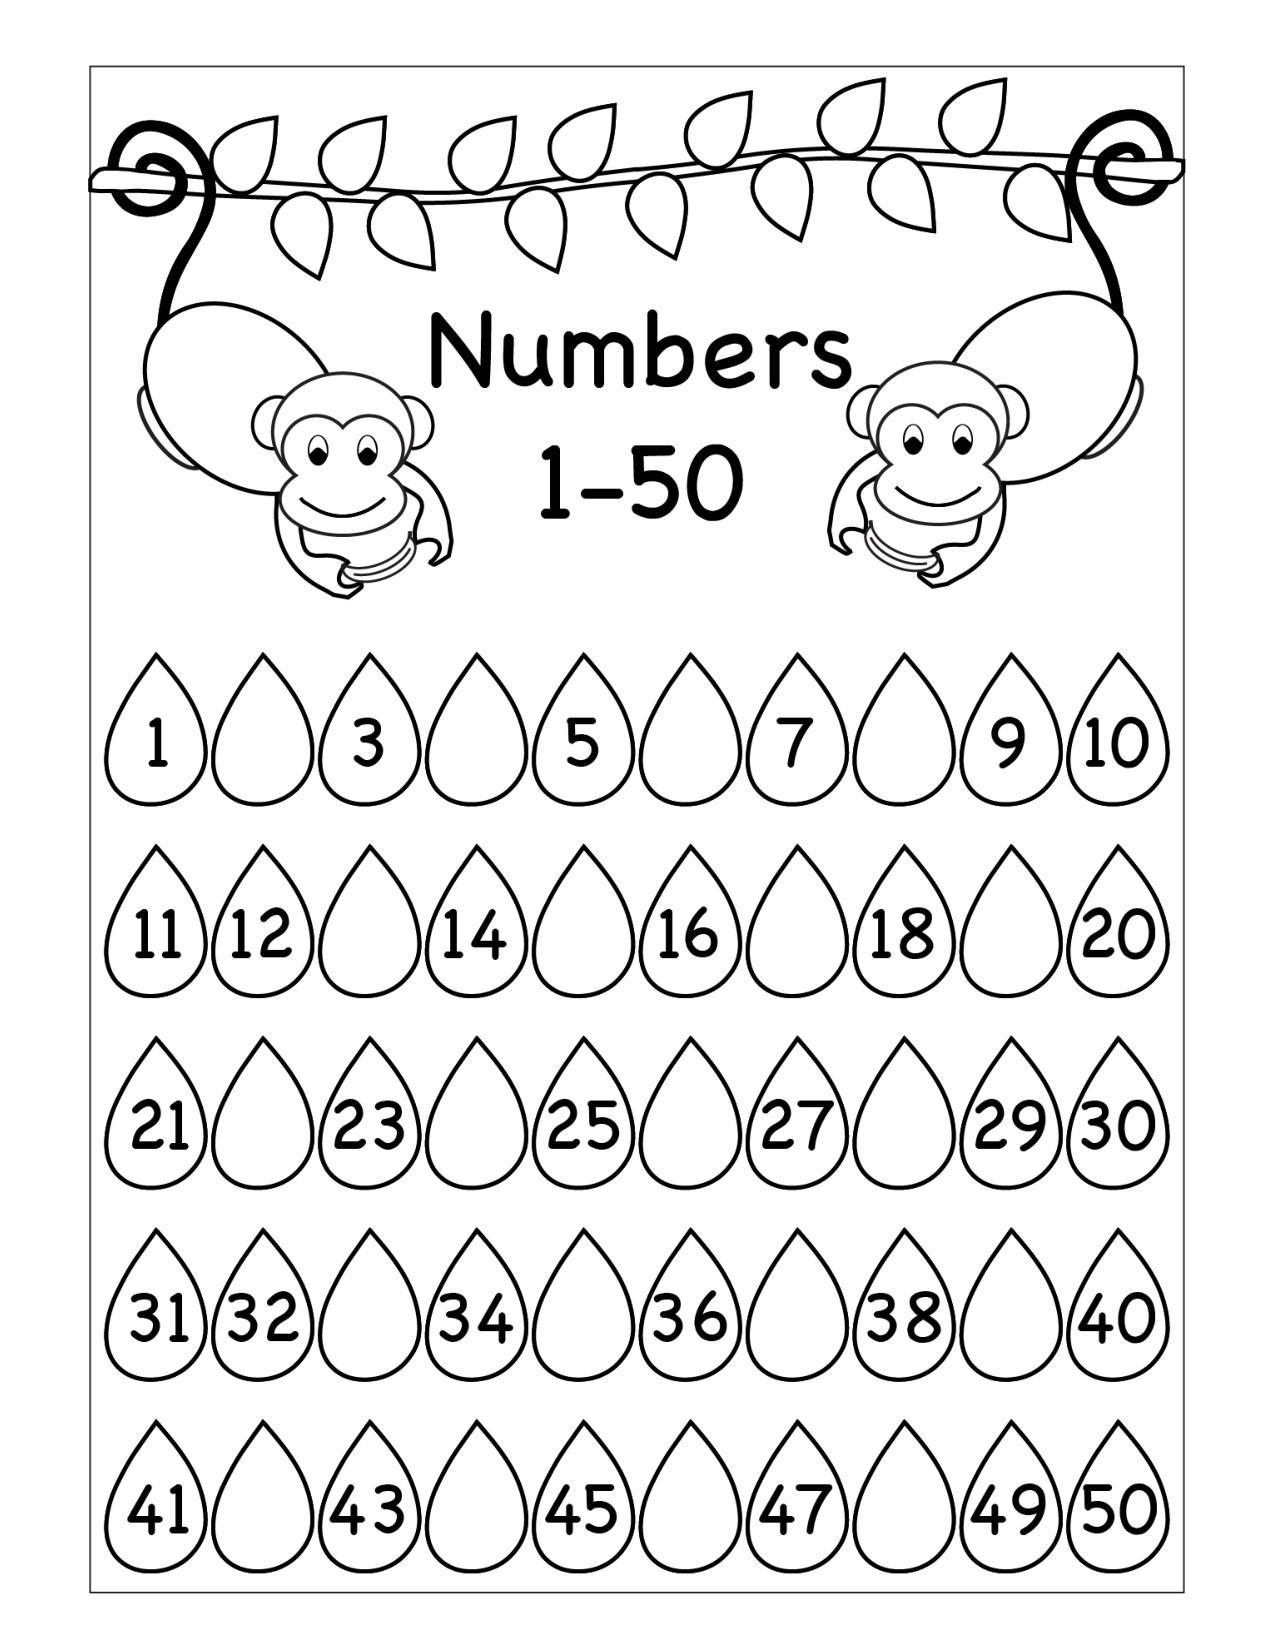 Polygons Worksheets 5th Grade Missing Numbers Worksheet Printable Worksheets and Free